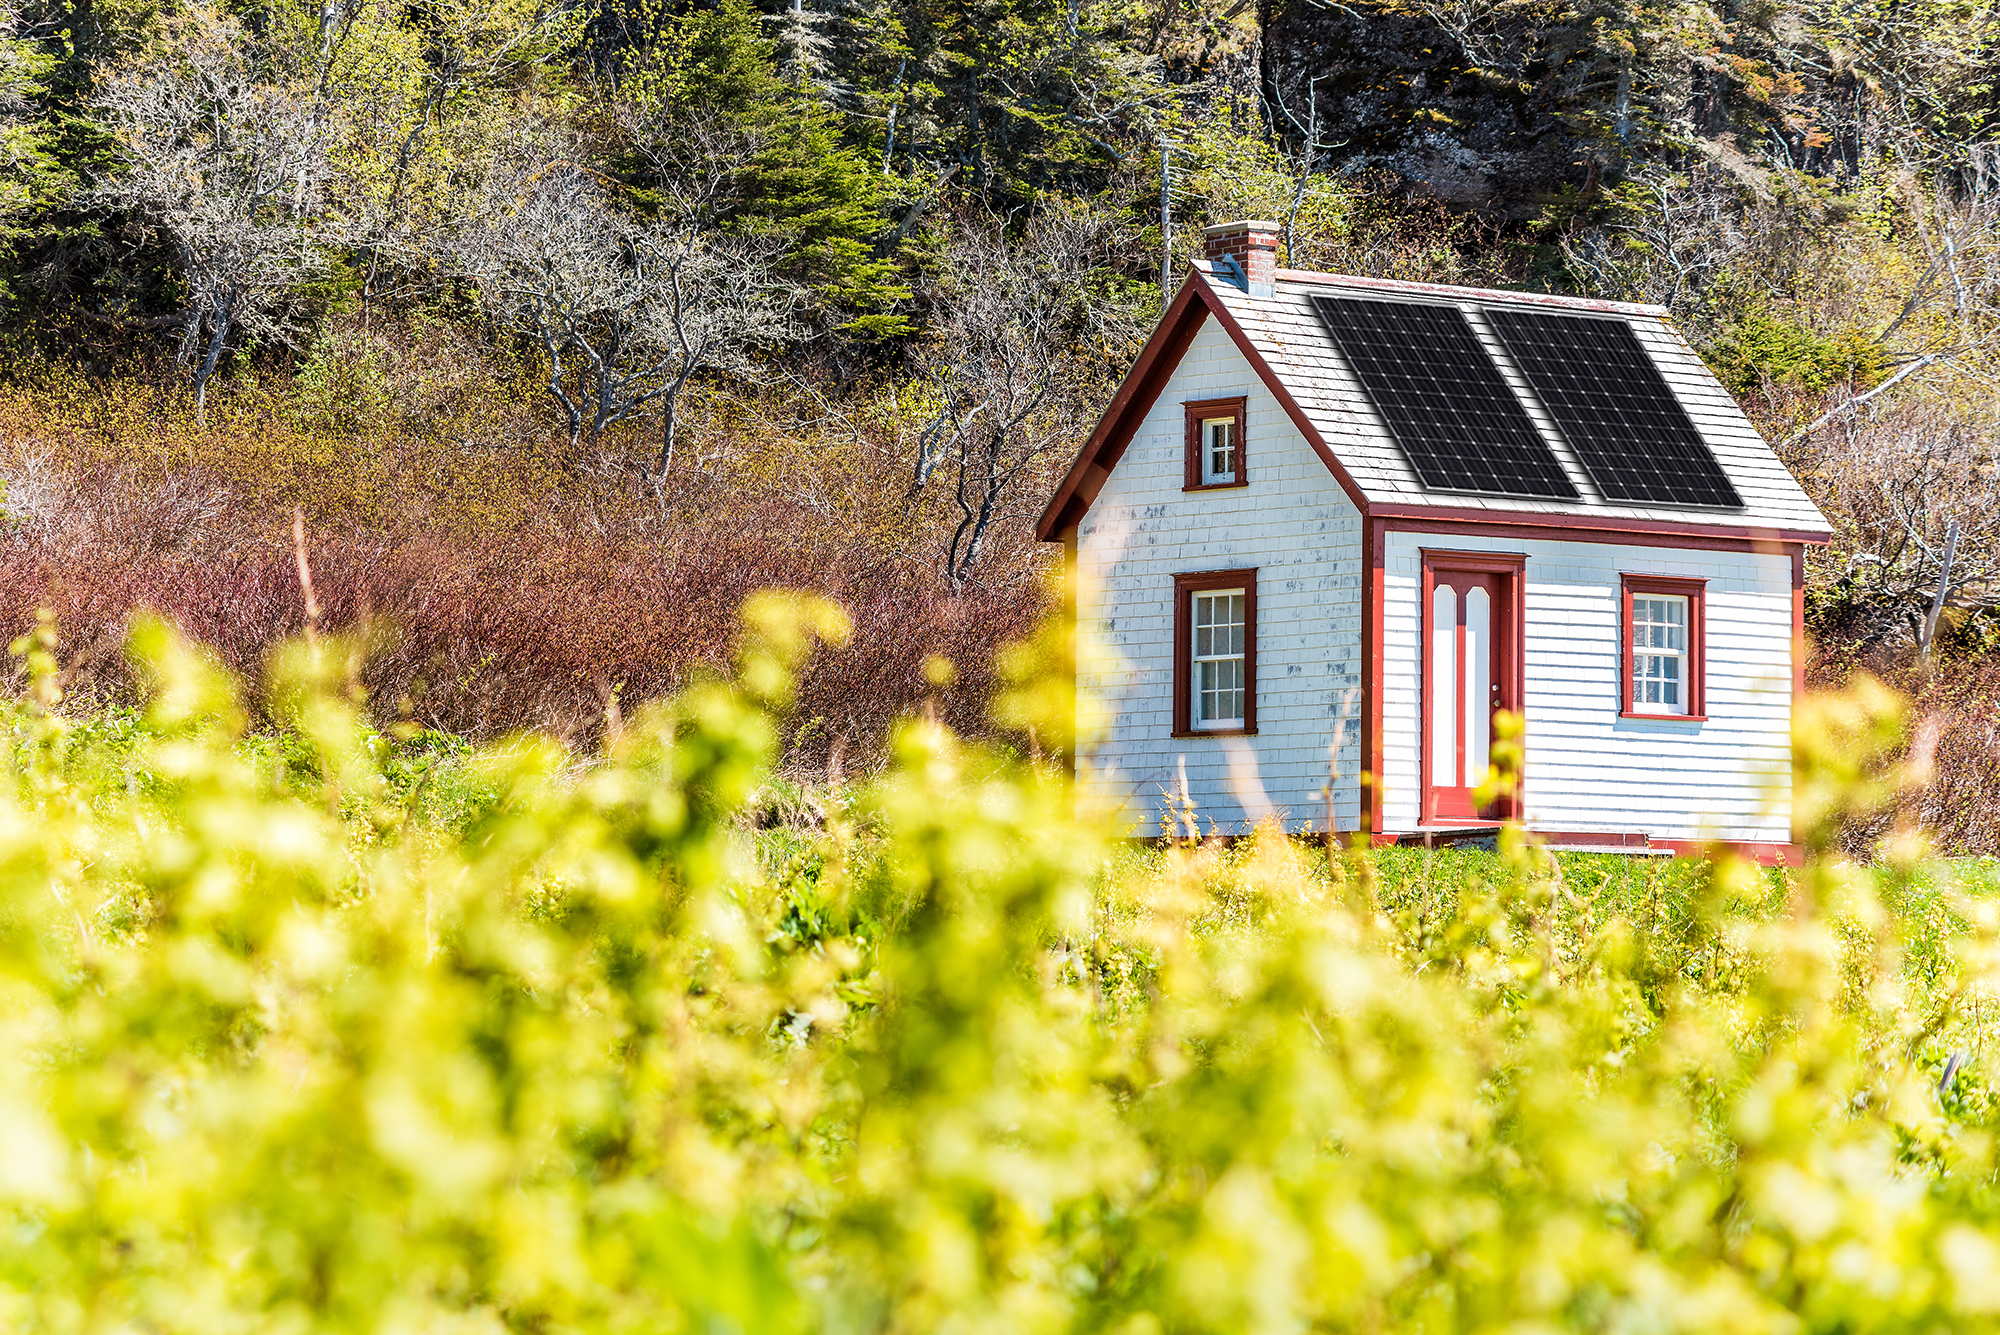 Old vintage white and red wooden tiny house with solar panels on the roof